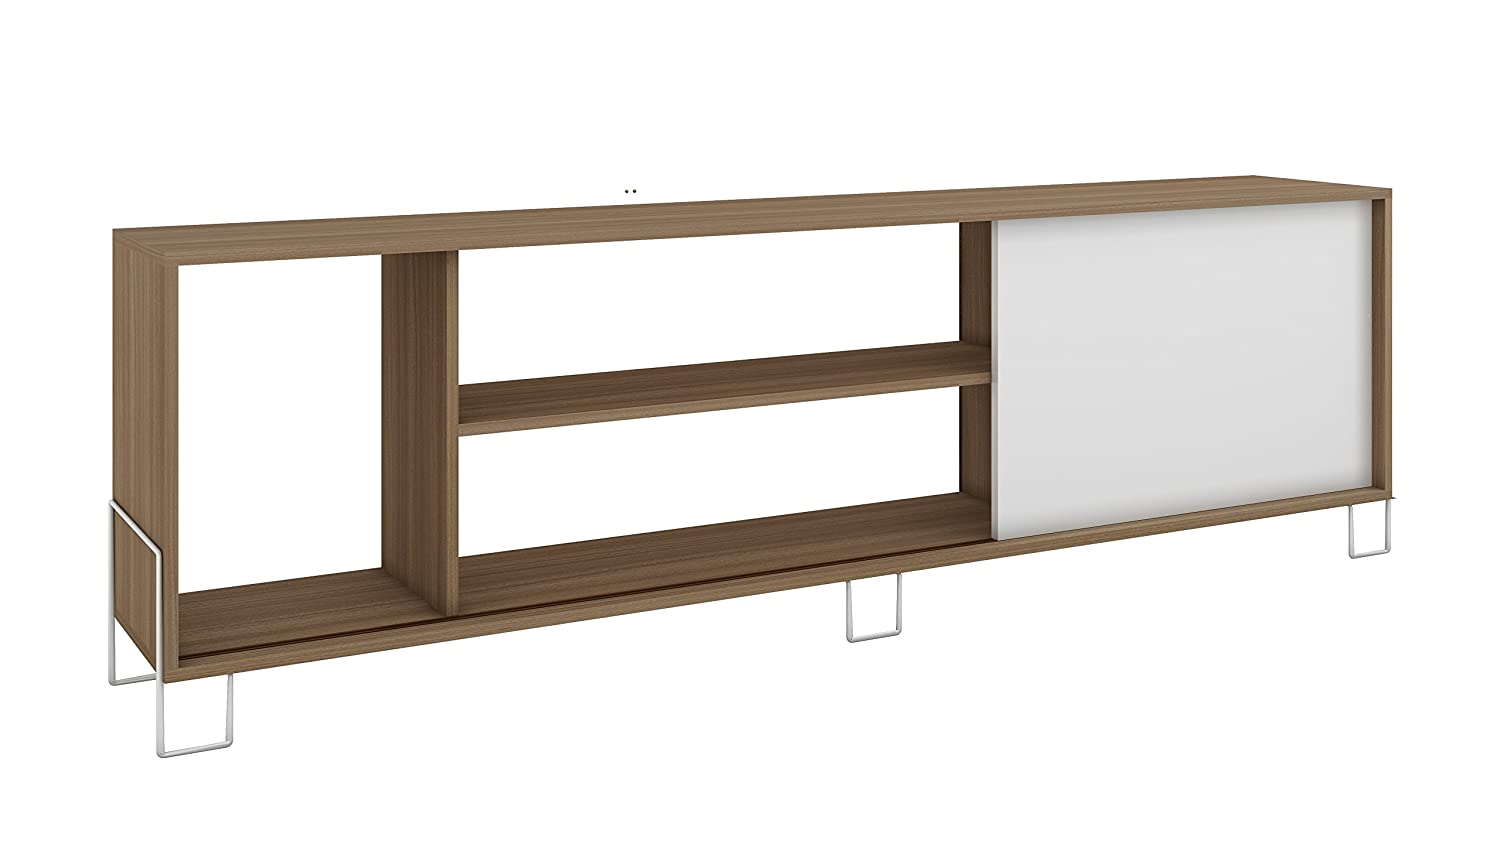 Manhattan Comfort Accentuations by Eye-Catching Nacka TV Stand 1.0 with 4 Shelves and 1 Sliding Door in An Oak Frame with A White Door and Feet 9AMC47